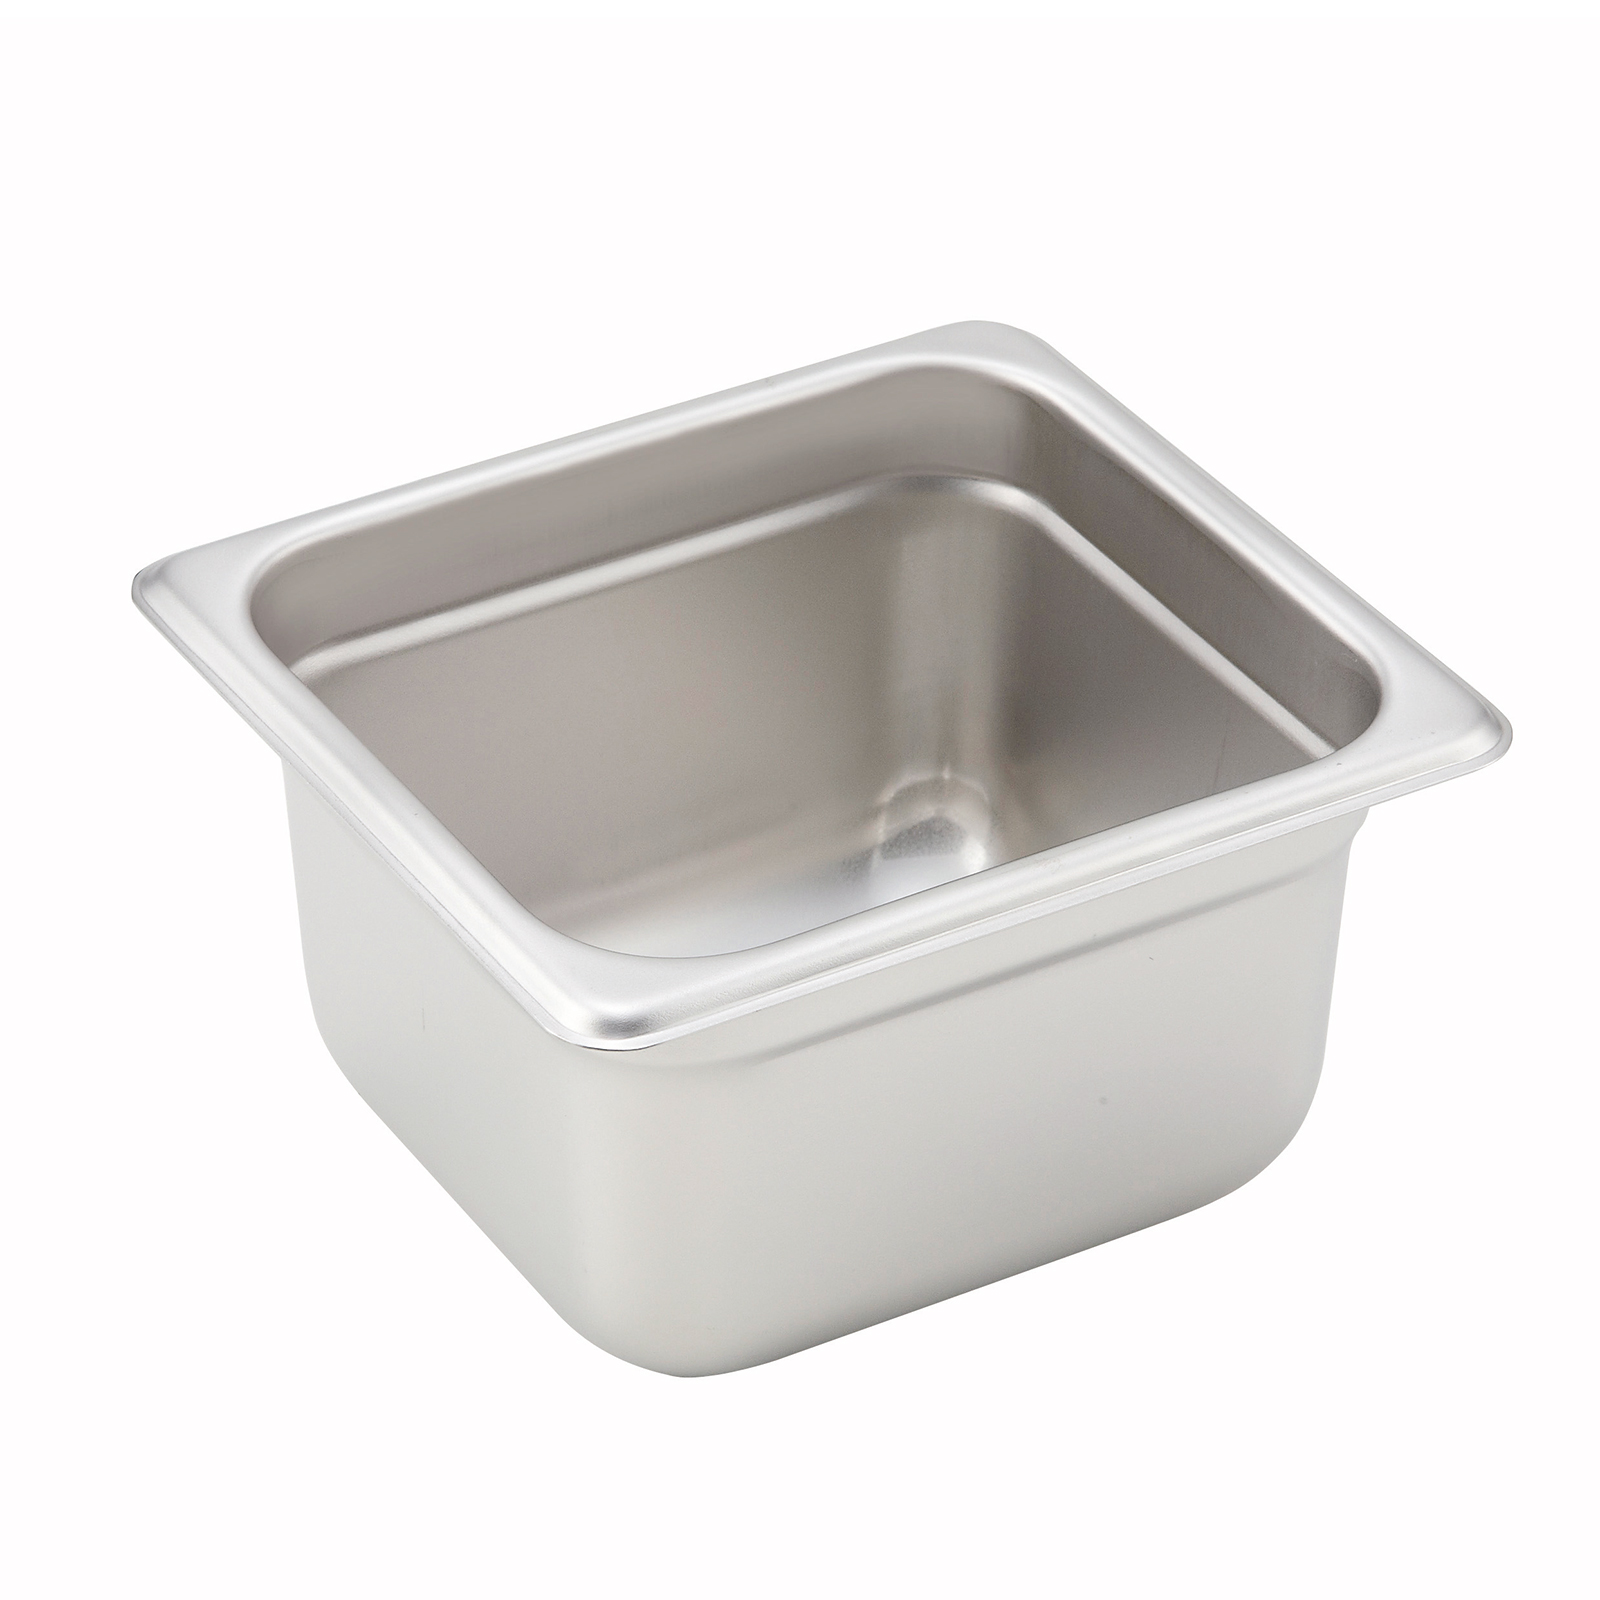 Winco SPJH-604 steam table pan, stainless steel